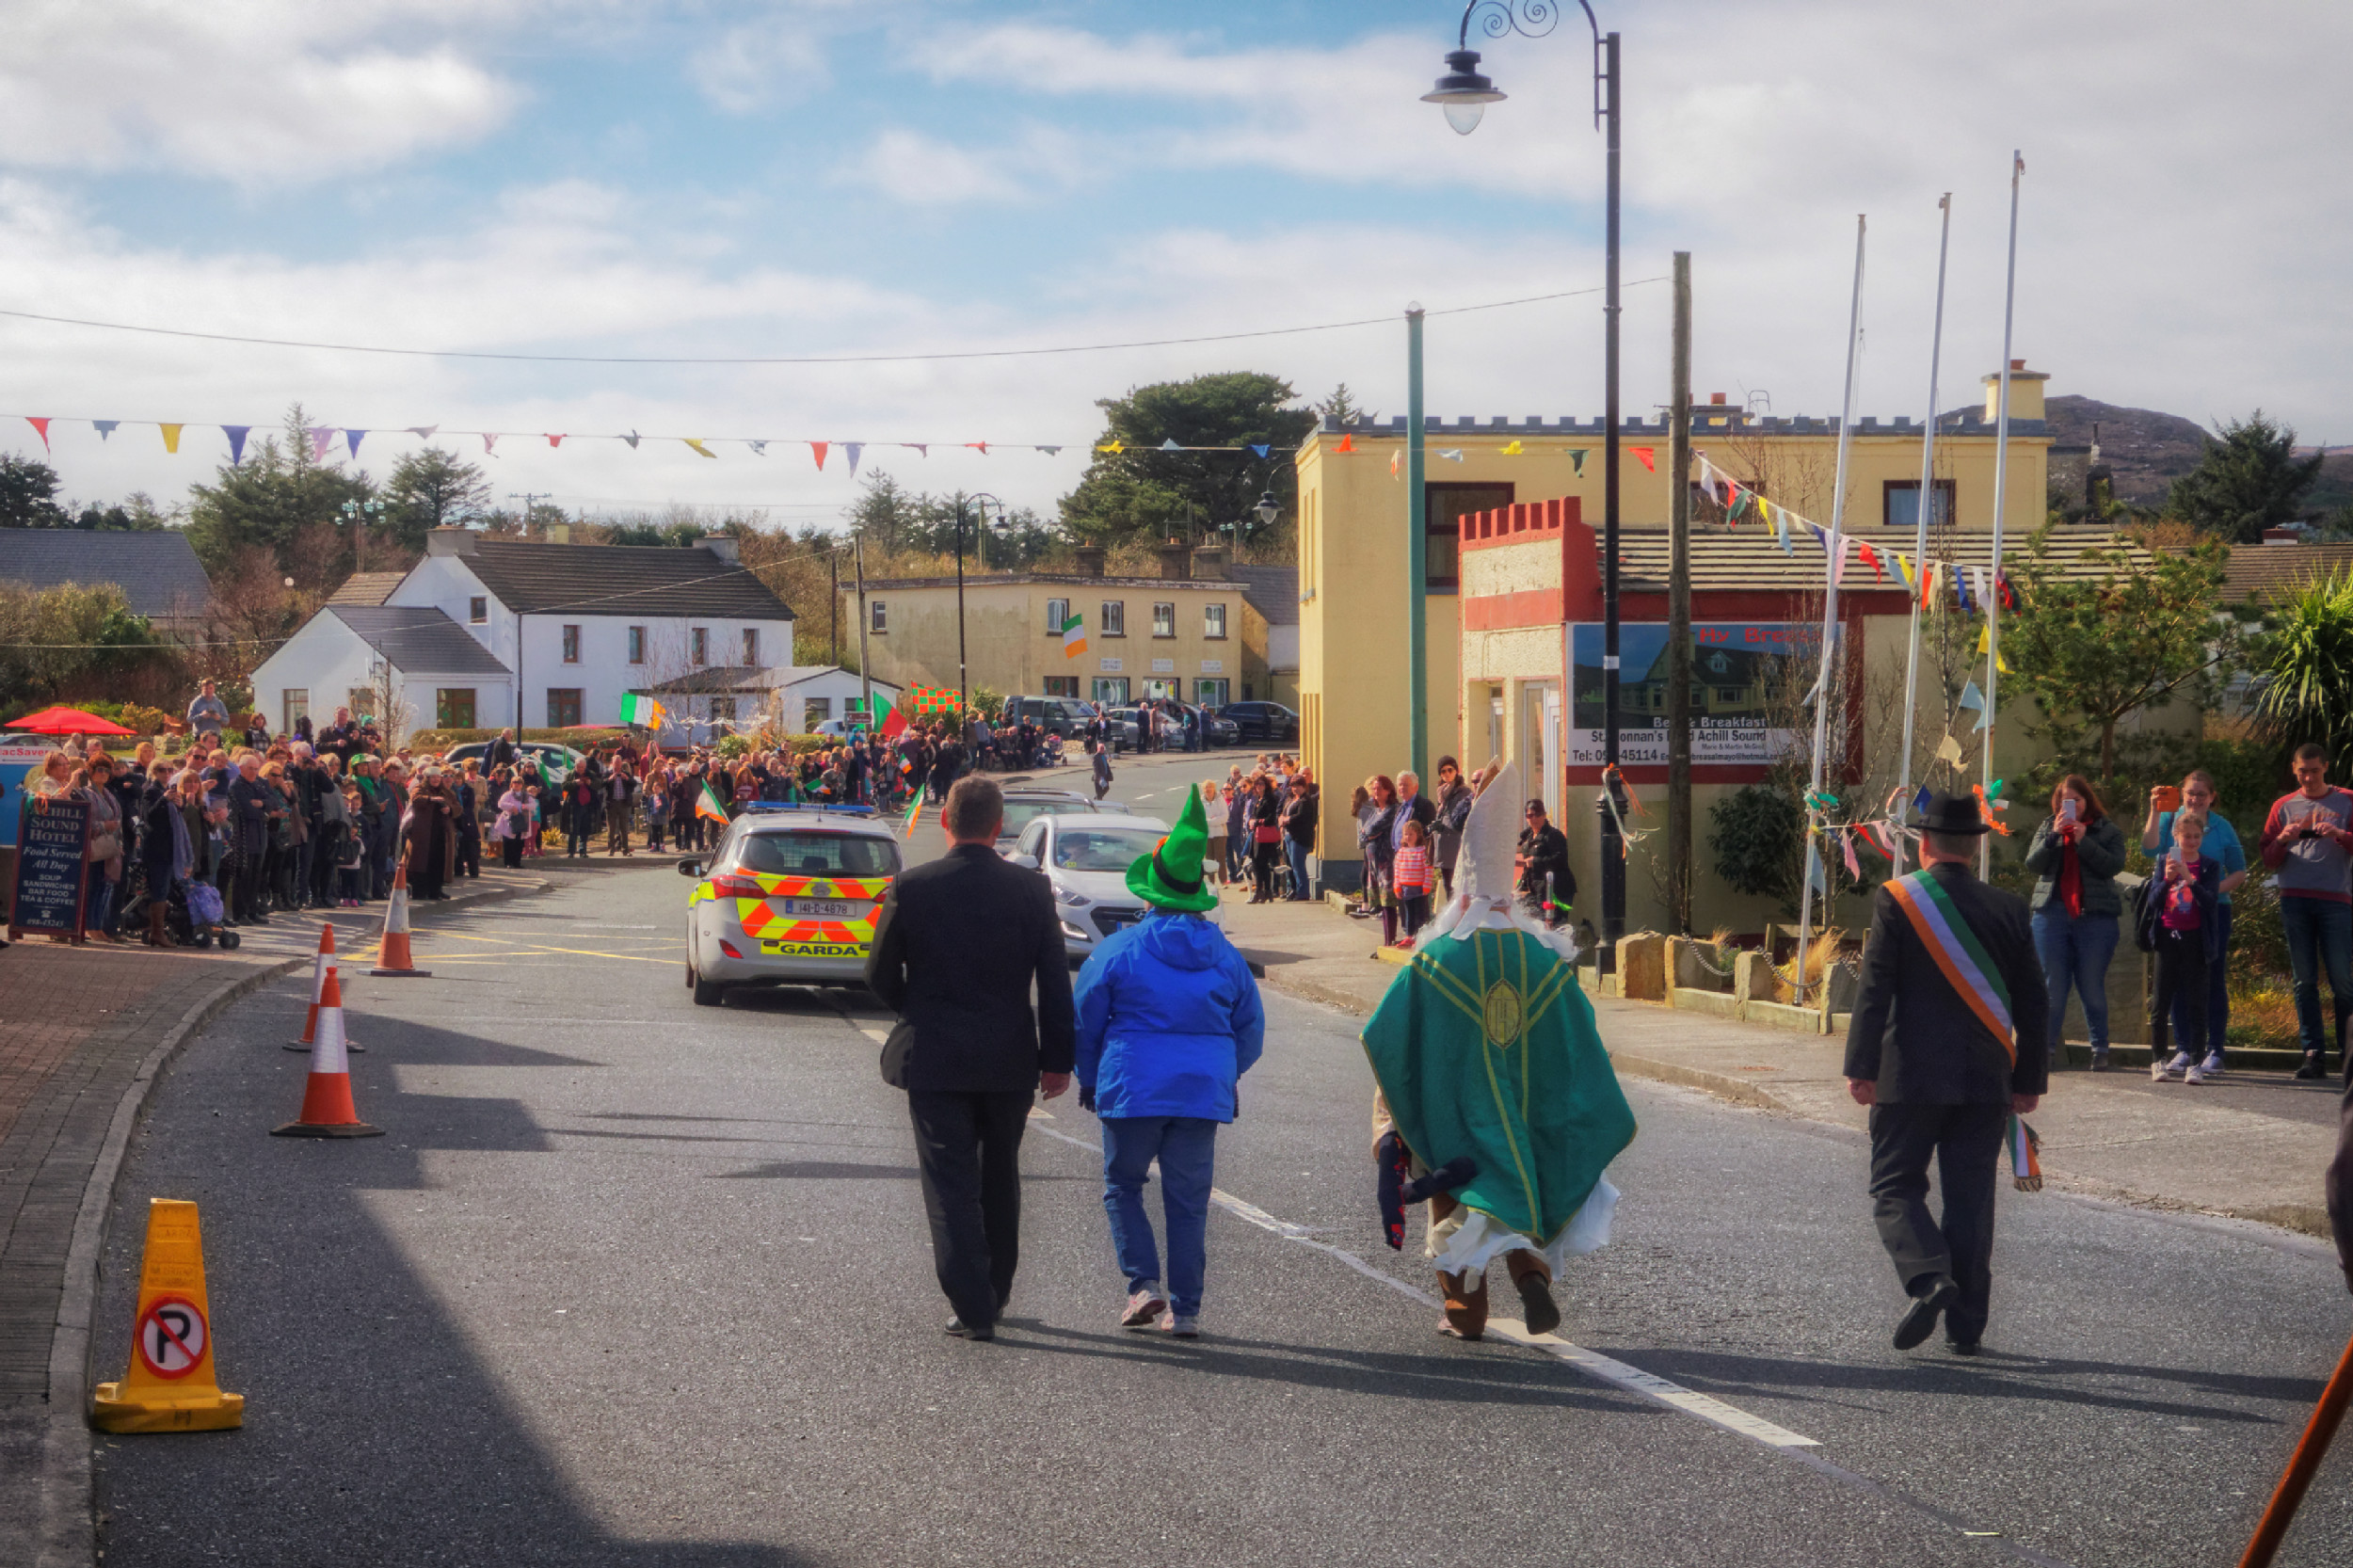 20160320130521-ie-achill-sound_parade-_DxO_13in_DxO96